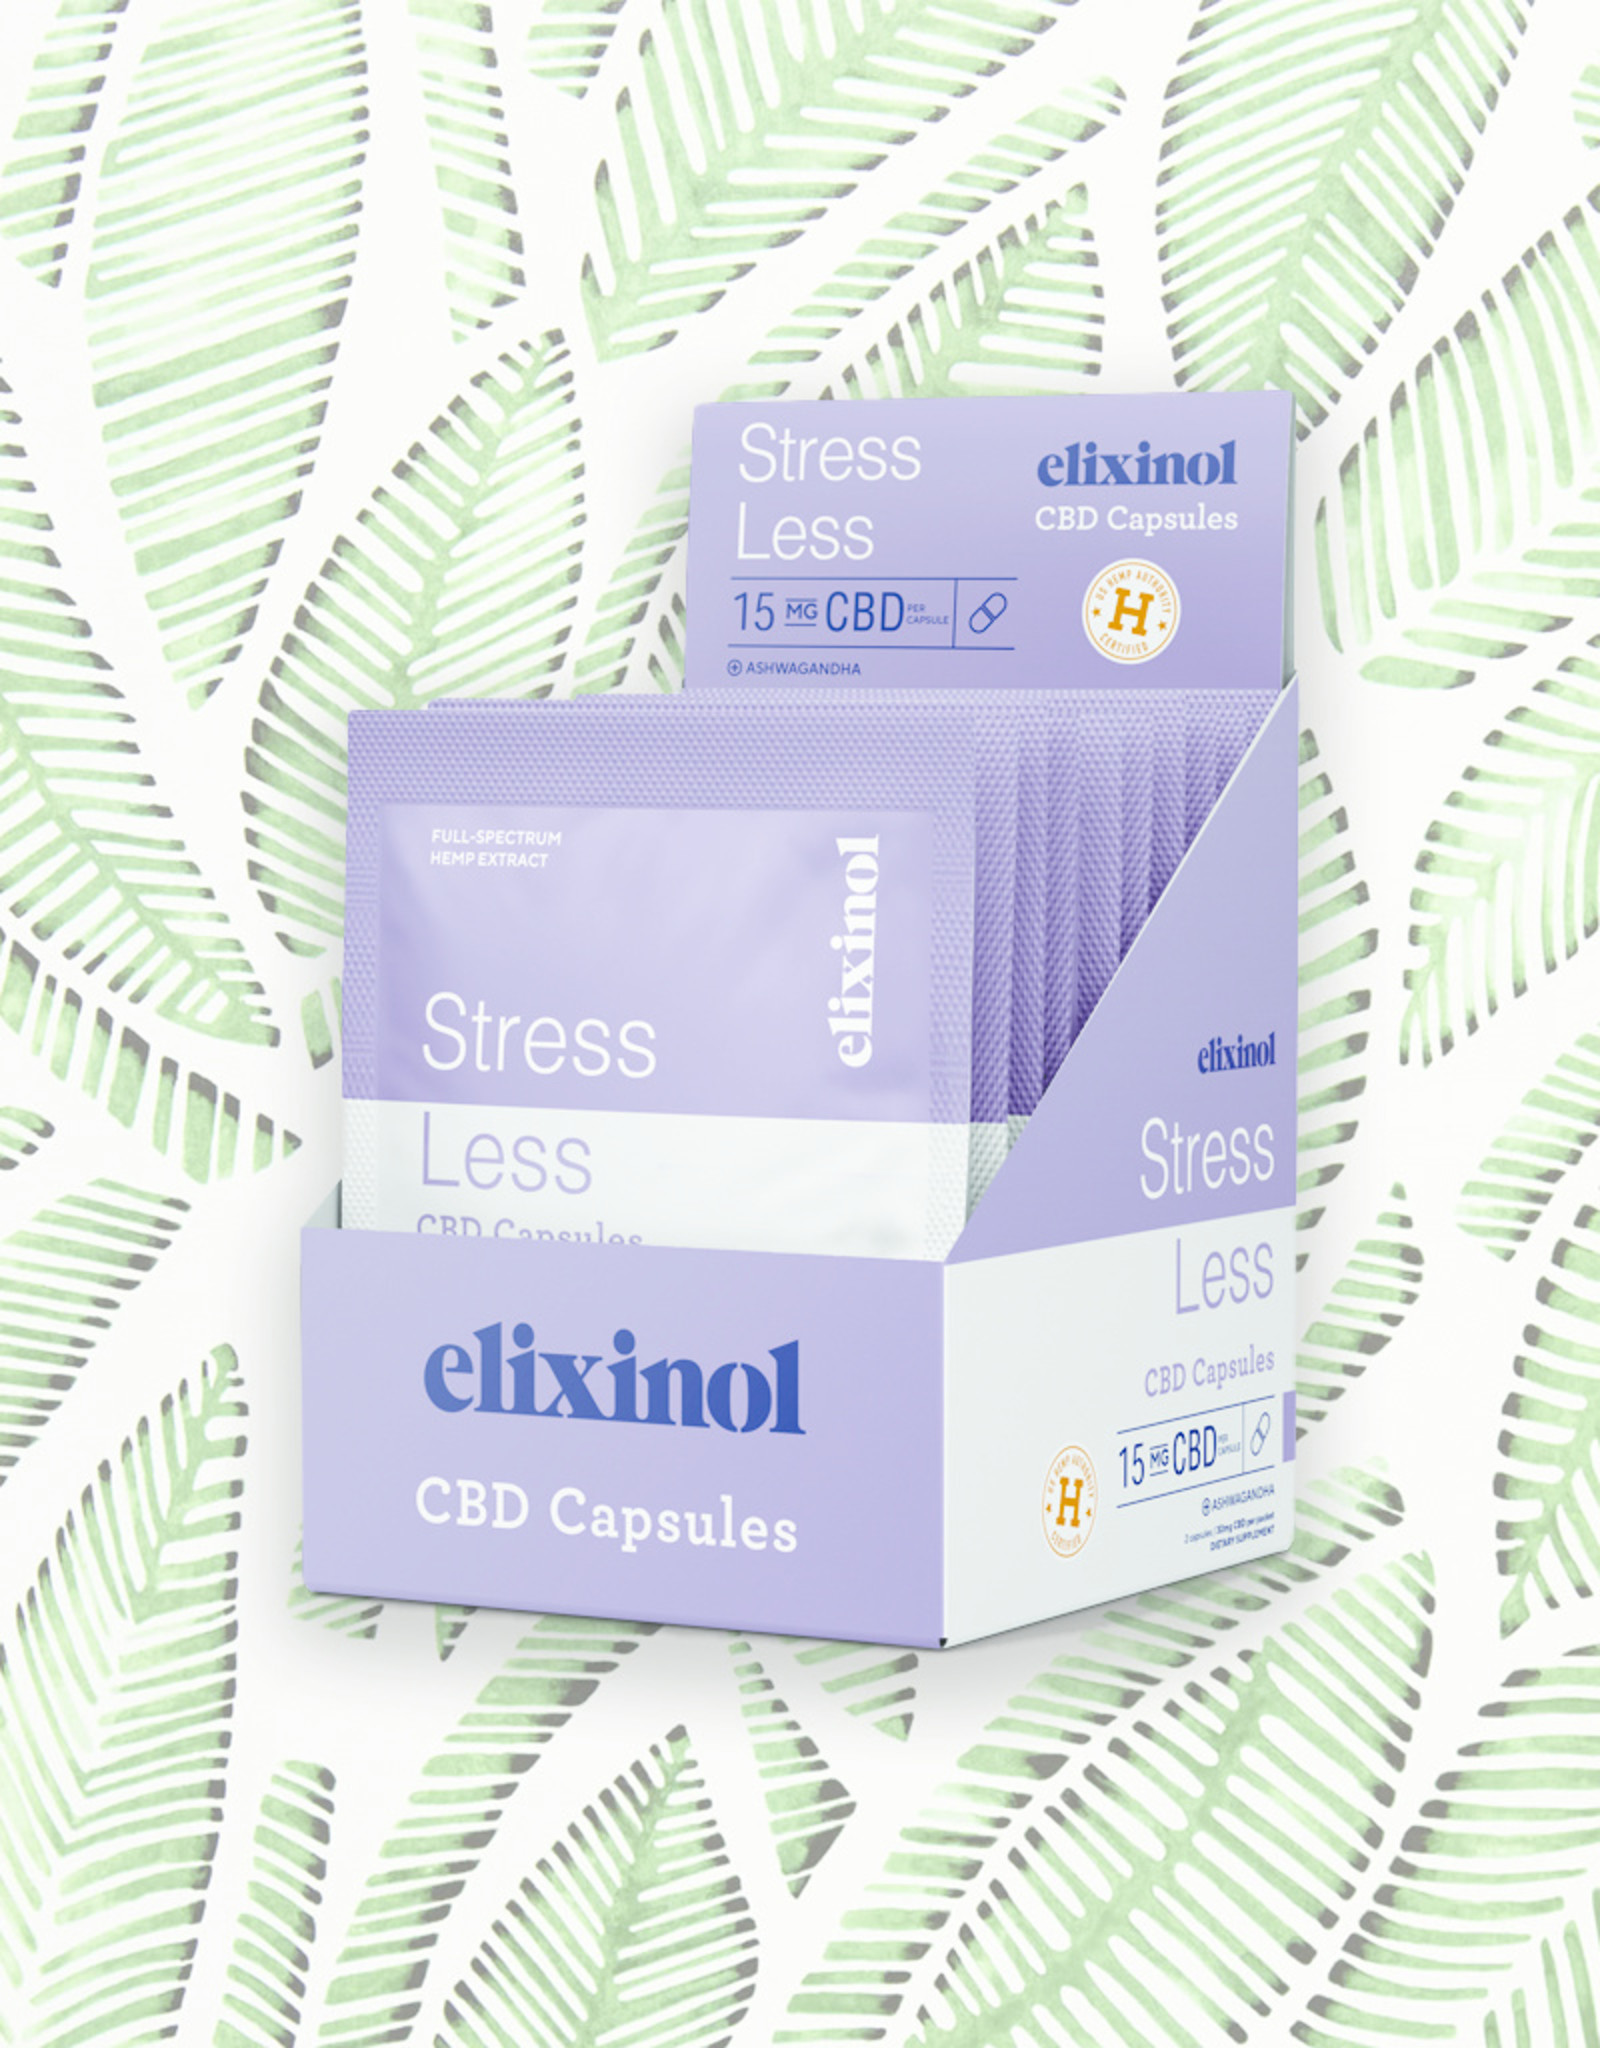 Elixinol Elixinol Stress Less Capsules 10 Pack(2/count)